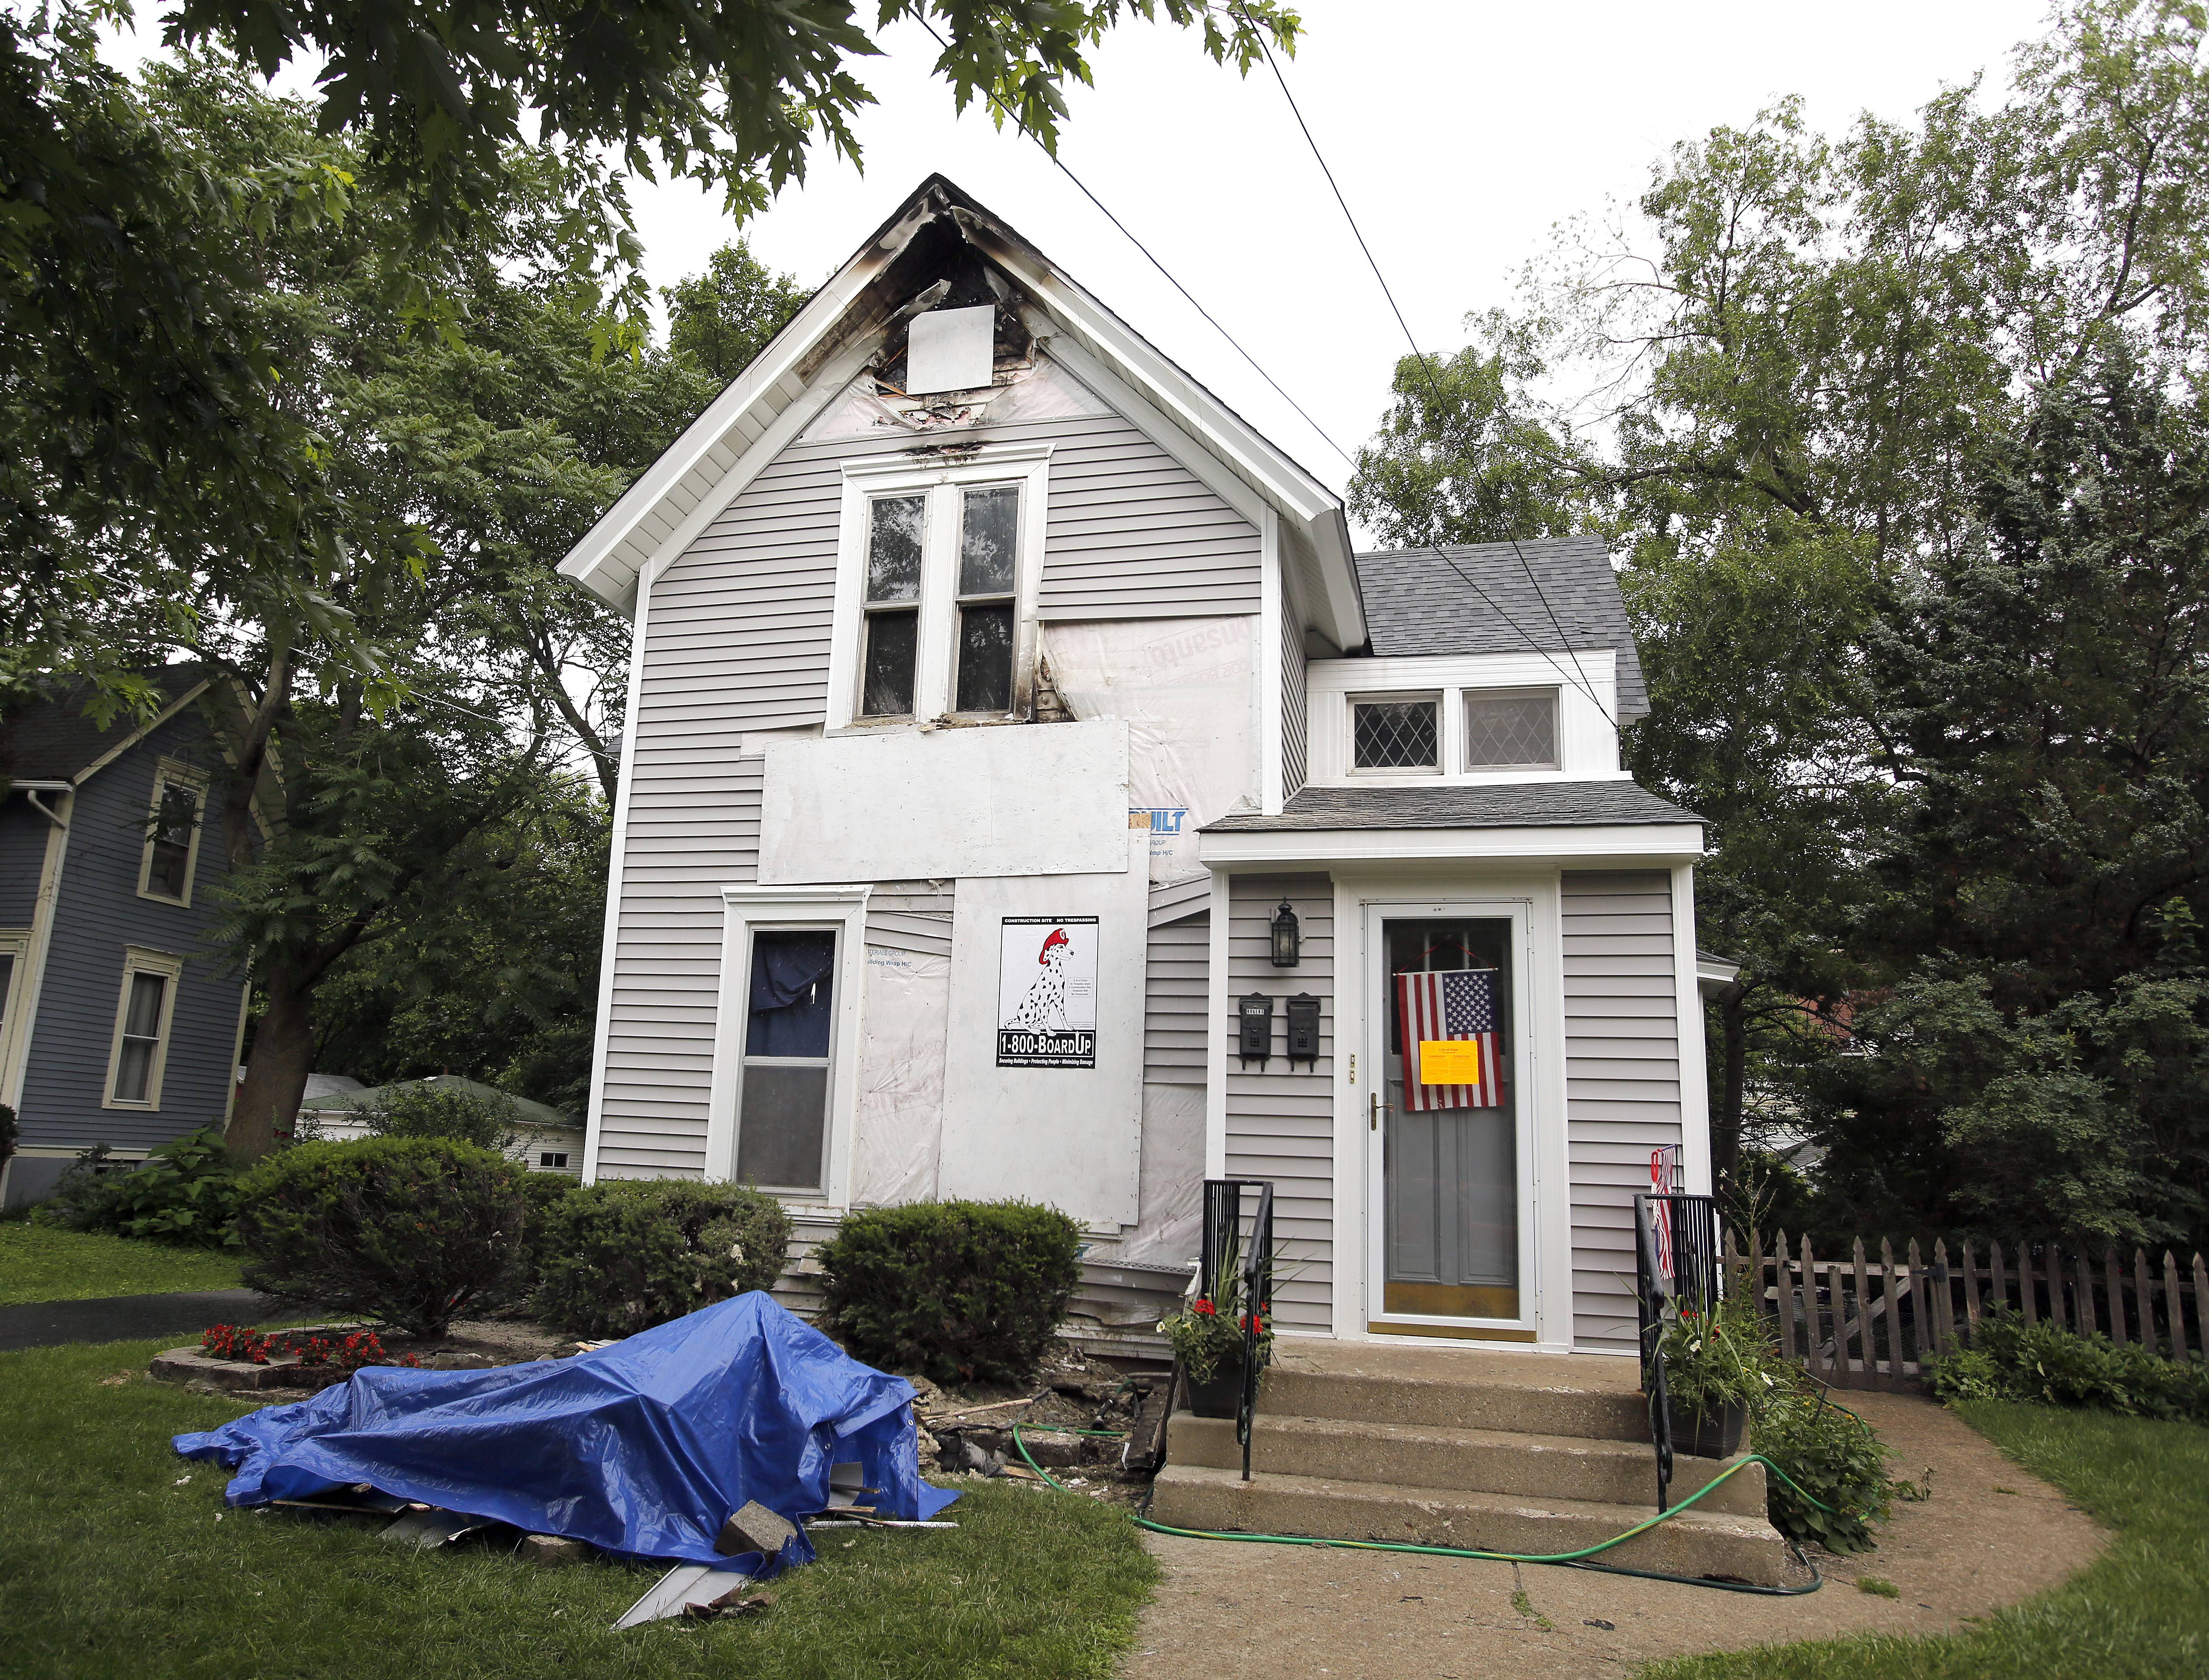 Elgin Fire Department officials said a Thursday blaze at a house on Prospect Boulevard was started by a painter's heat gun.